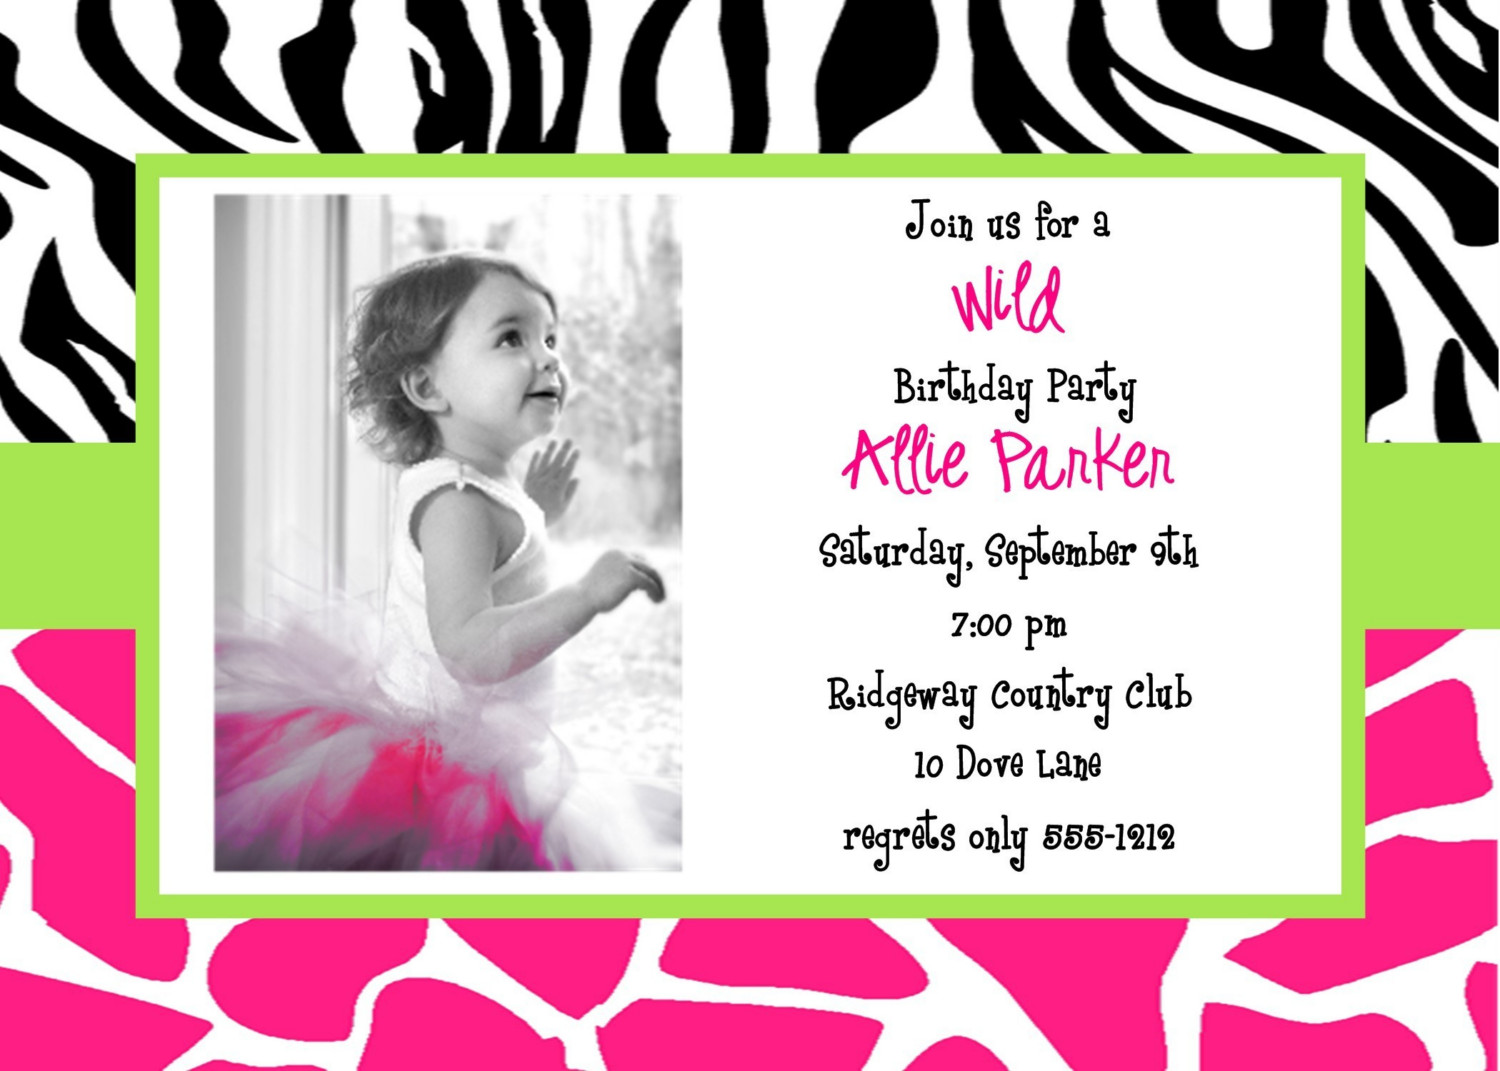 invitation card design for birthday party free ; kids-designing-free-printable-invitation-cards-template-ideas-zebra-colorful-motive-background-real-photo-format